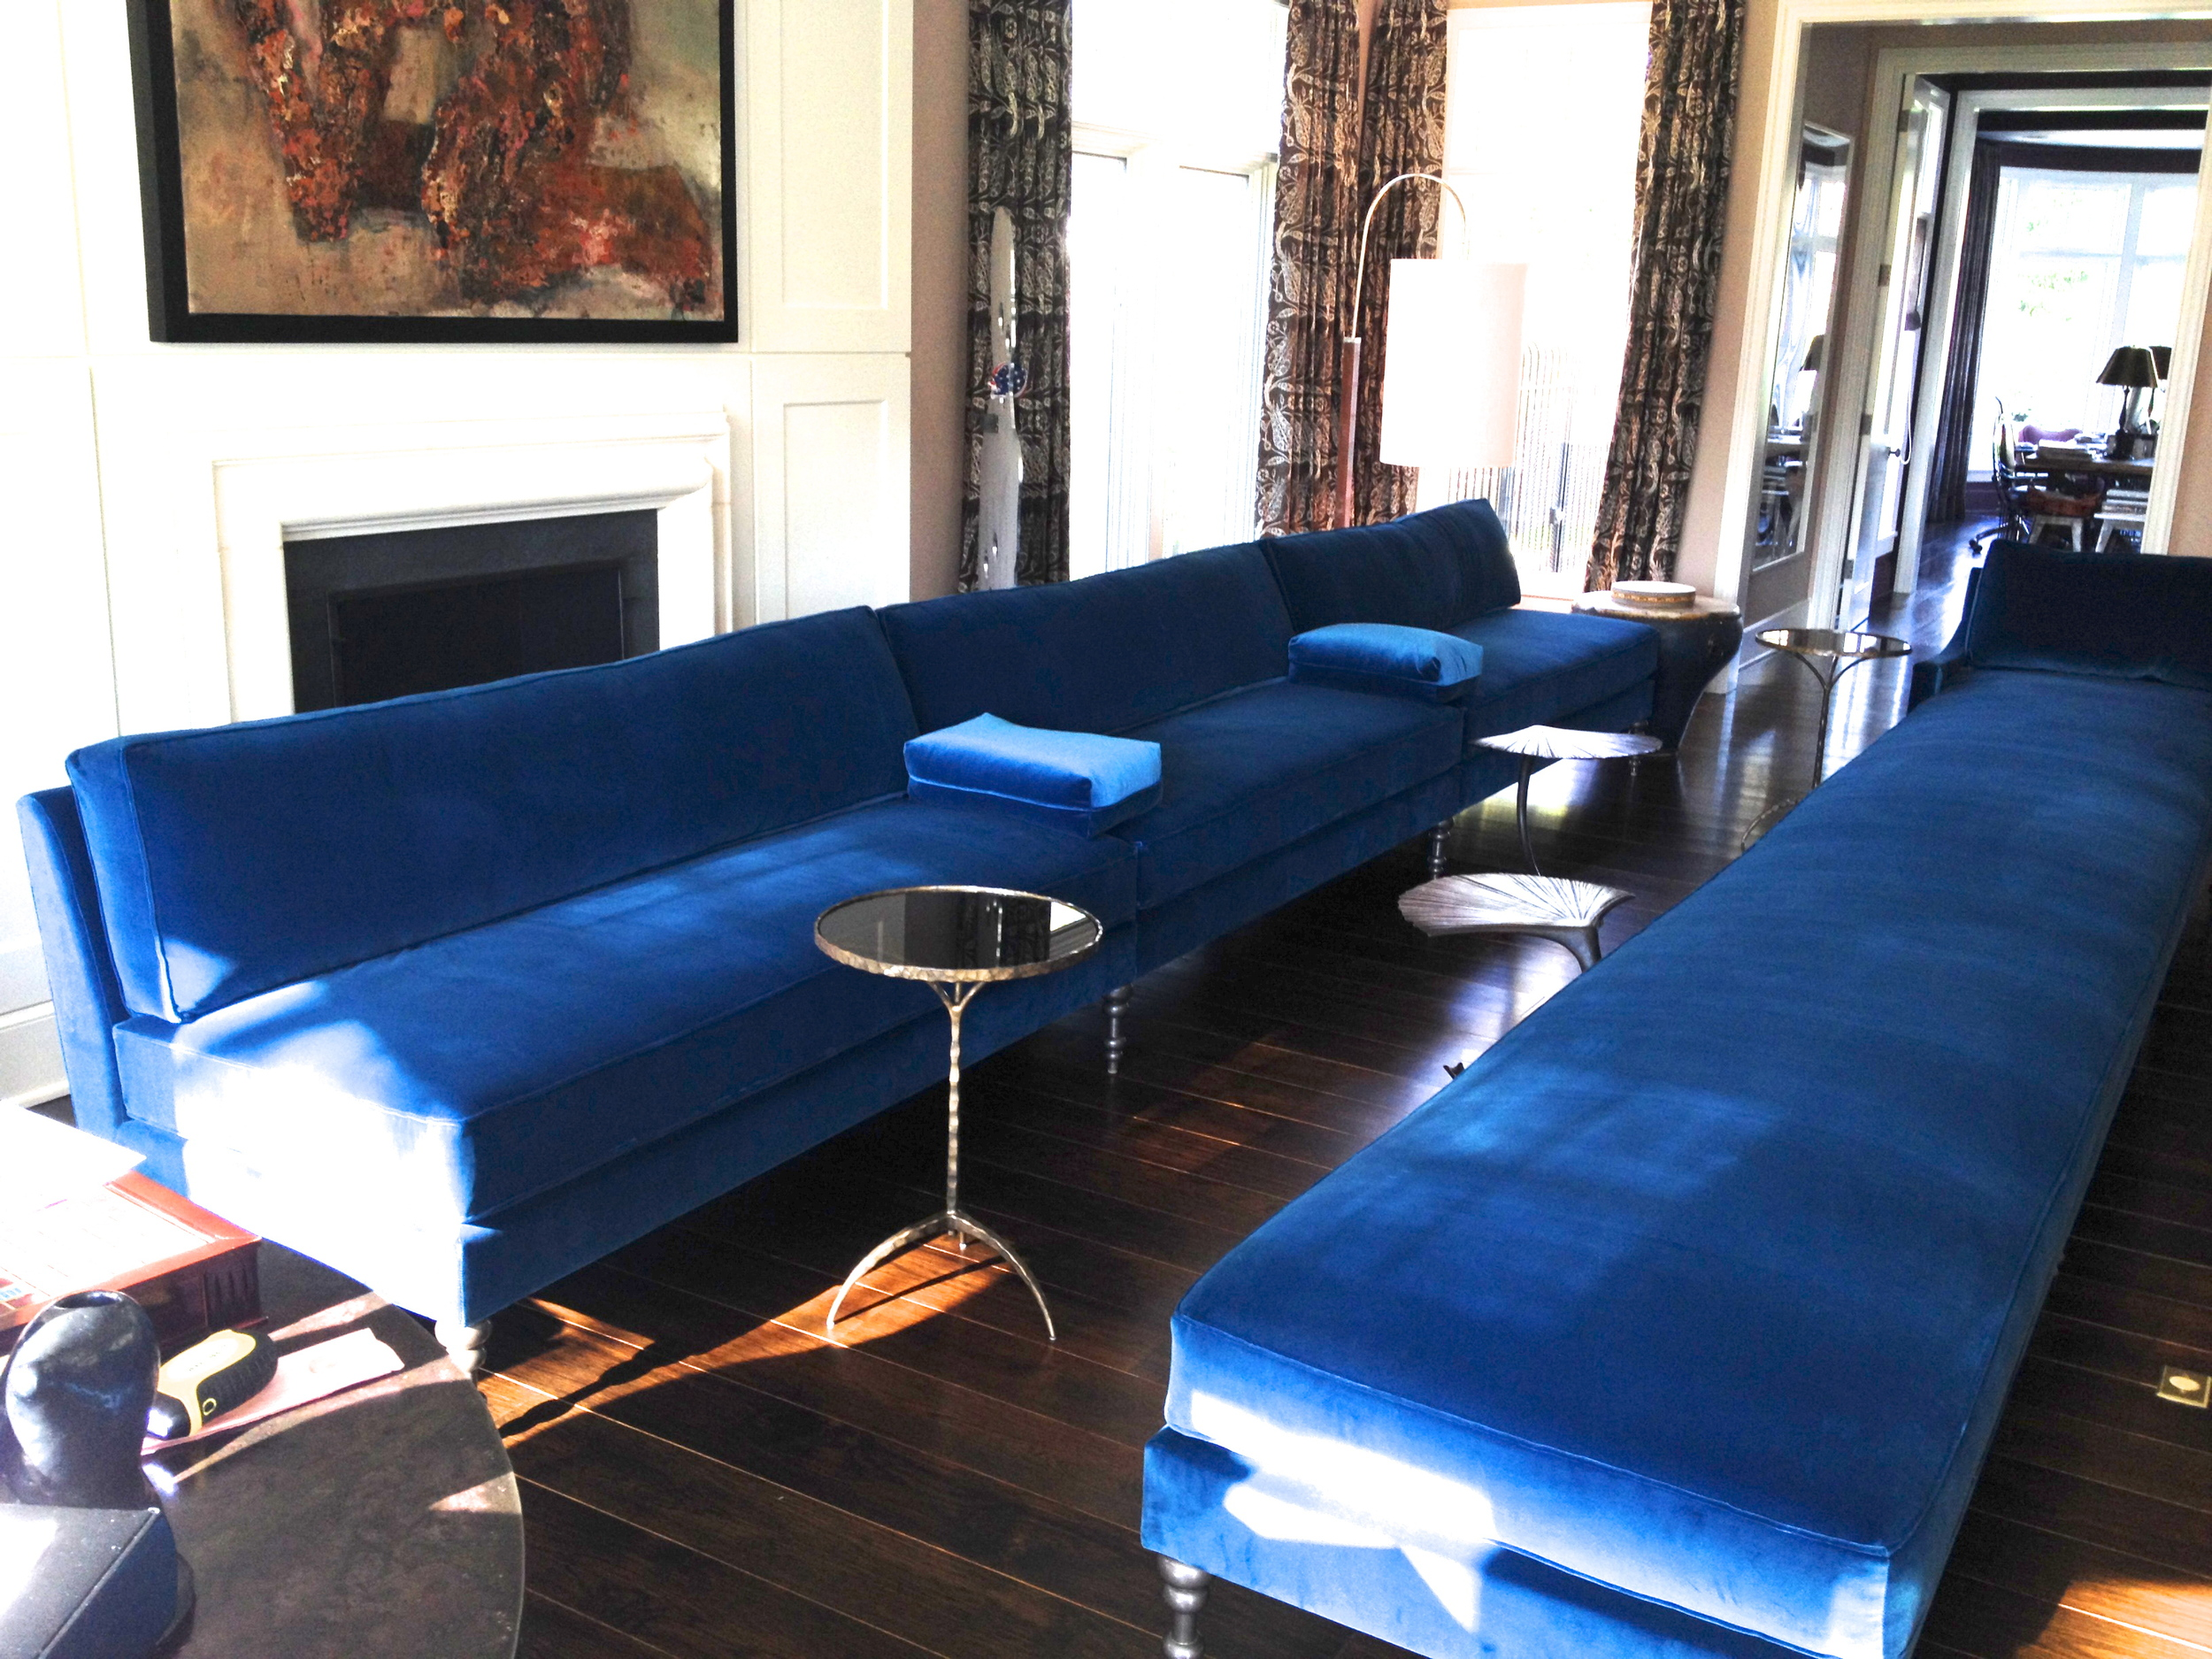 TRU custom 18' long armless sofa and chaise, turned legs, all down seat and back cushions.